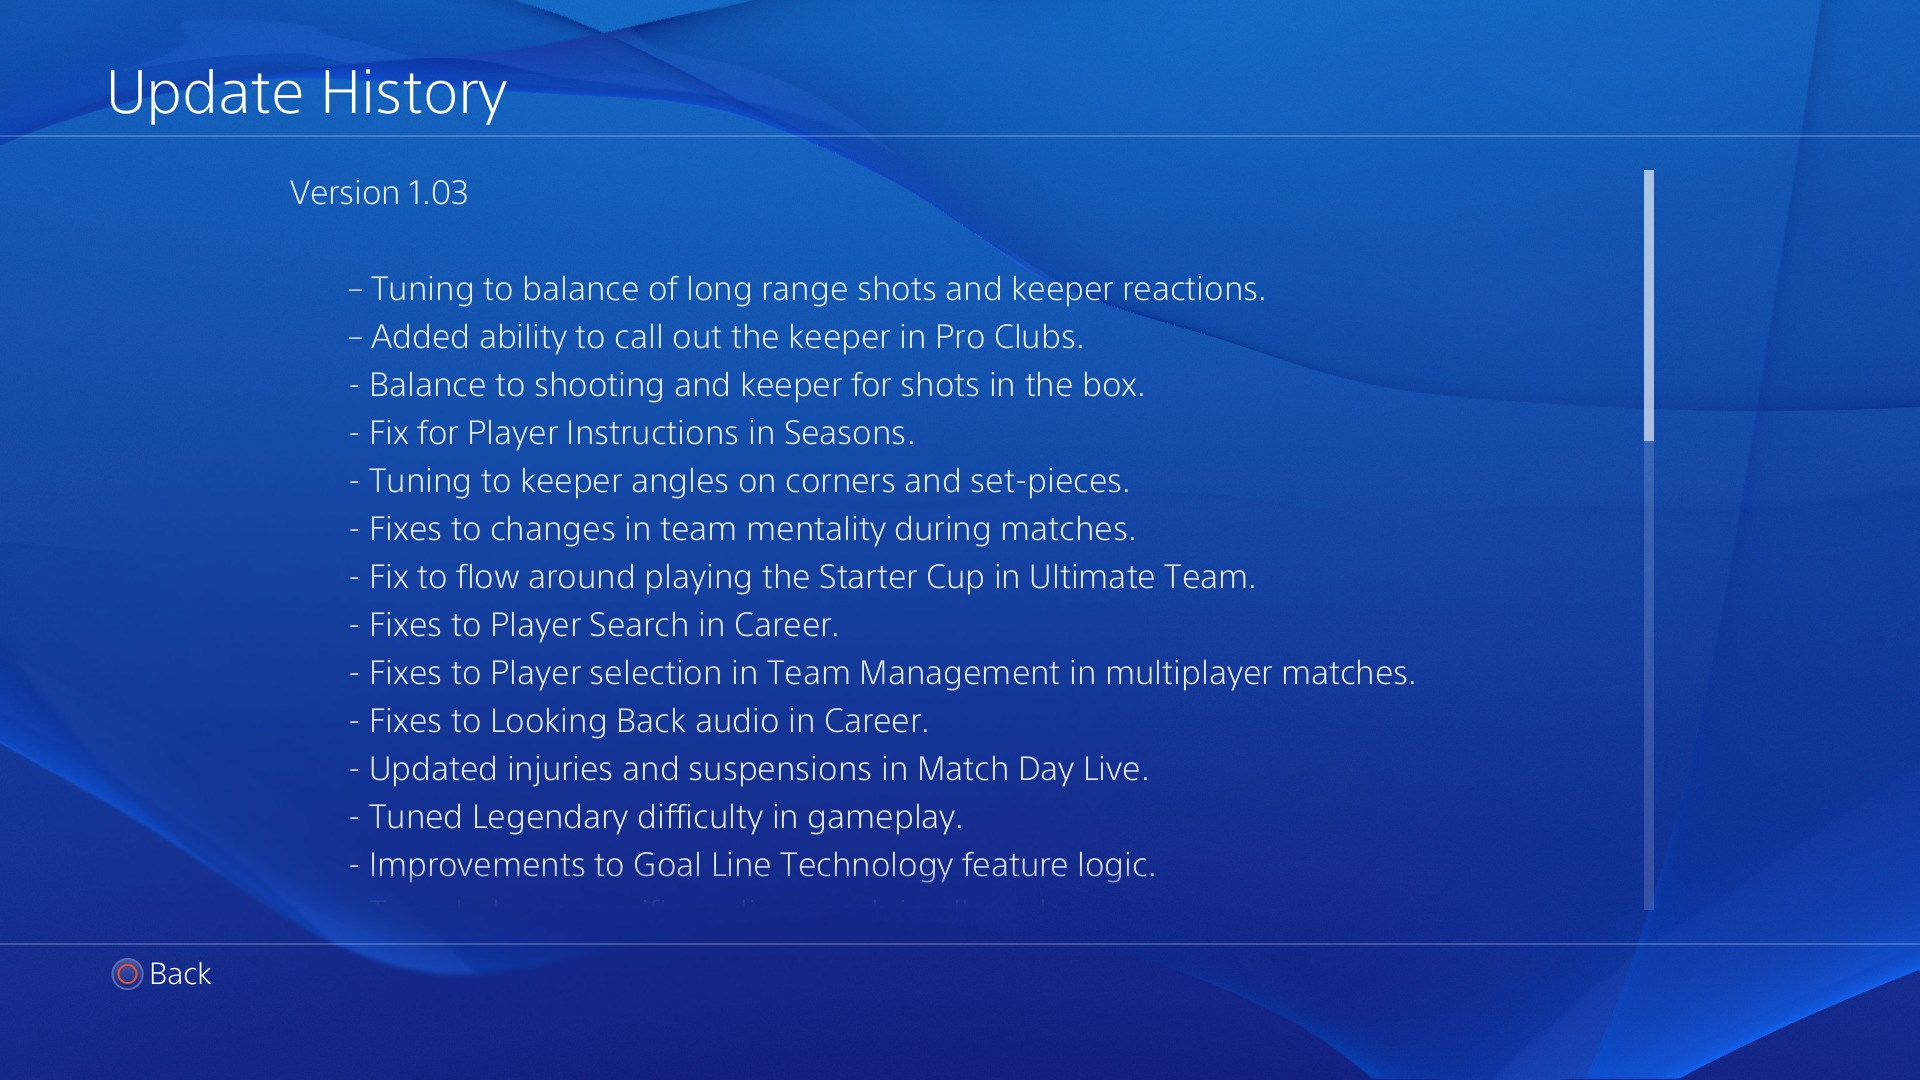 fifa 14 patch 1.03 ps4